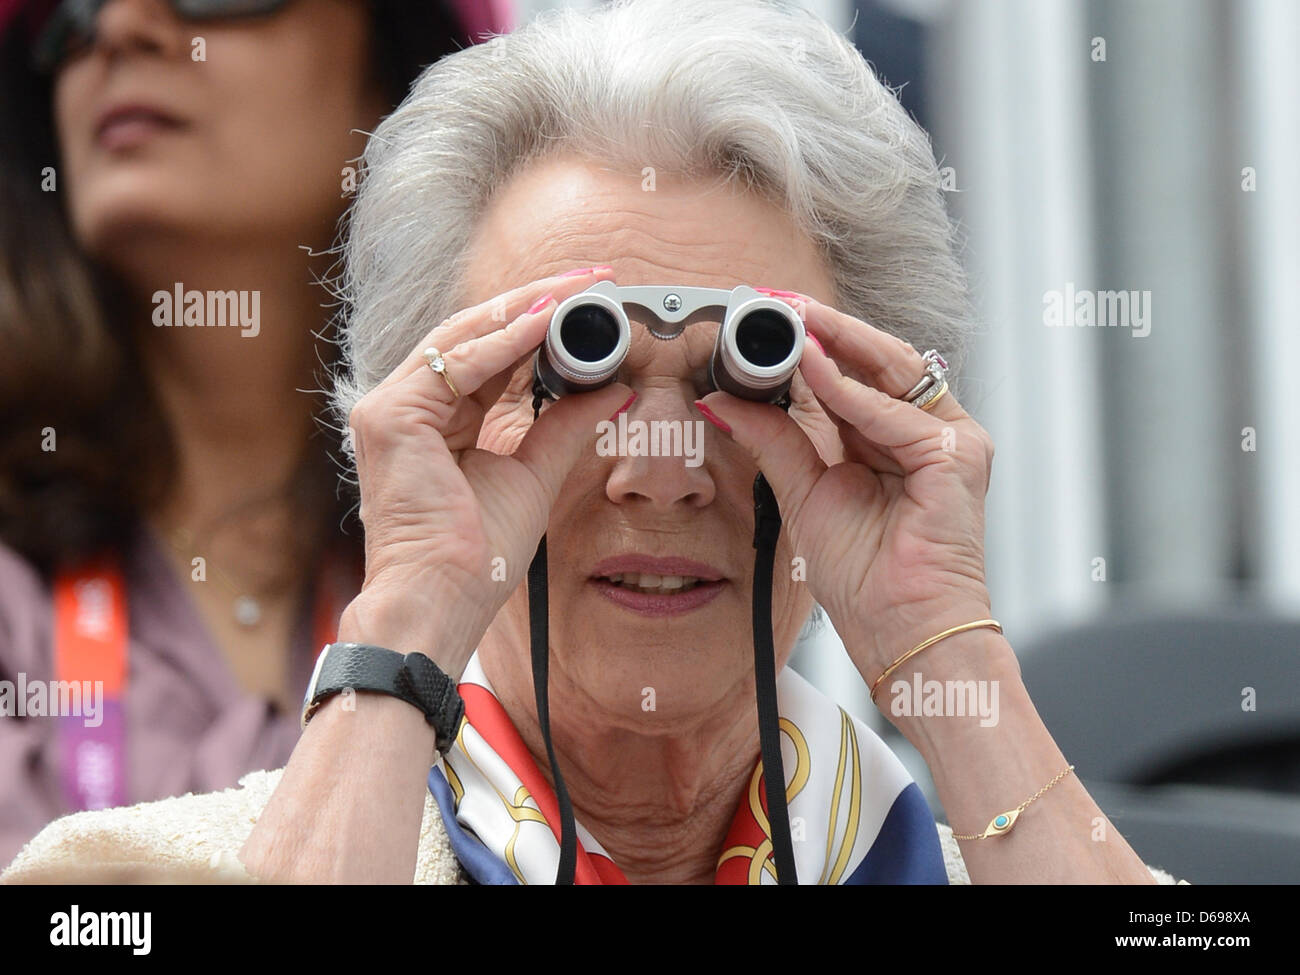 Princess Benedikte of Denmark watches the competition at the London 2012 olympic dressage at Greenwich Park in London, - Stock Image